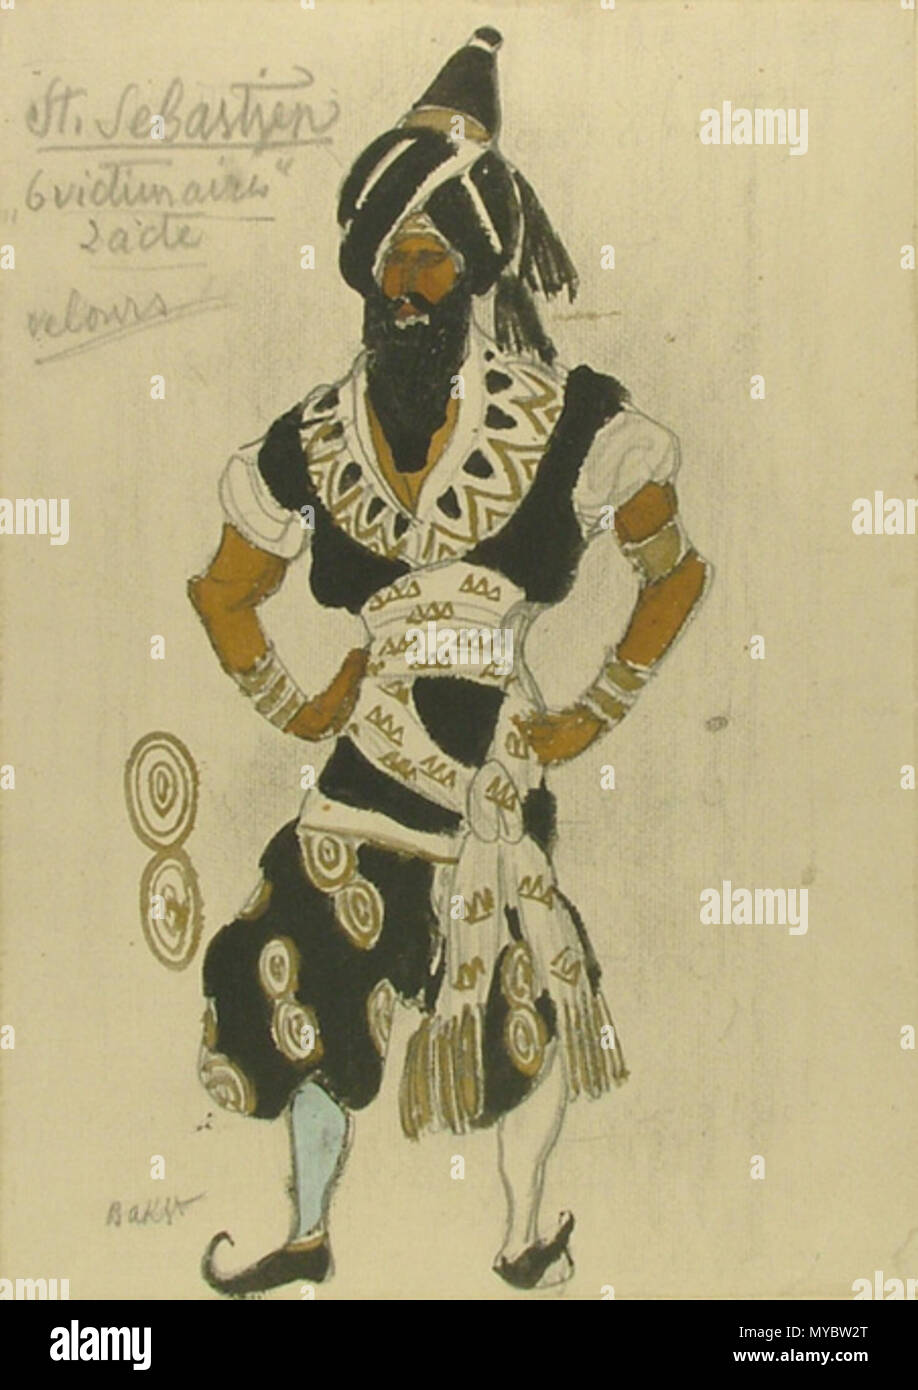 . Design for a Costume in 'St Sebastien' Salmina-Haskell (1989) 7. Graphite, watercolour and gold paint over graphite on off-white laid paper. Sheet: 314 x 223 mm. Signed in graphite lower left: Bakst; Inscribed in graphite upper left: St. Sebastien / '6 victimaires' / 2 acte / velours The Ashmolean Museum, Oxford. Bequeathed by Mikhail Vasil'evich Braikevitch, 1949; WA1949.379.2. 20th century. Bakst 349 Marthyre de S. Sebastien by L. Bakst 14 - Stock Image